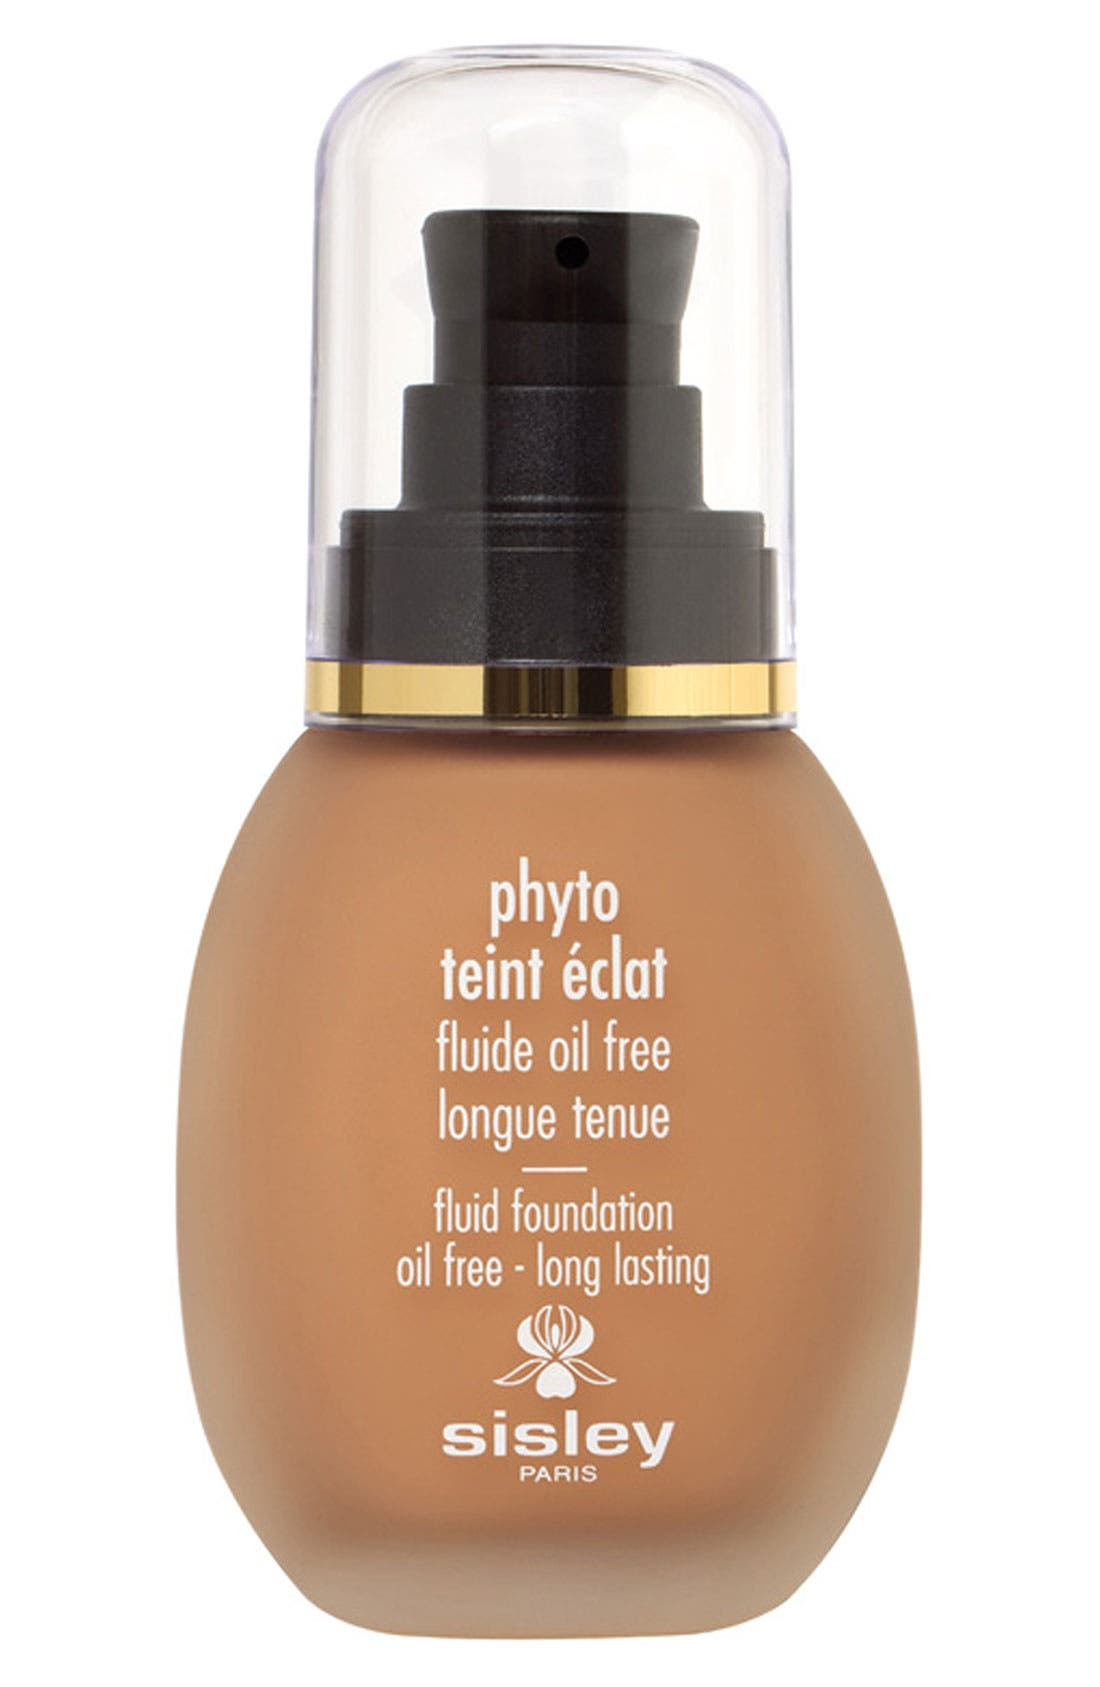 Sisley Paris Phyto-Teint Éclat Fluid Foundation